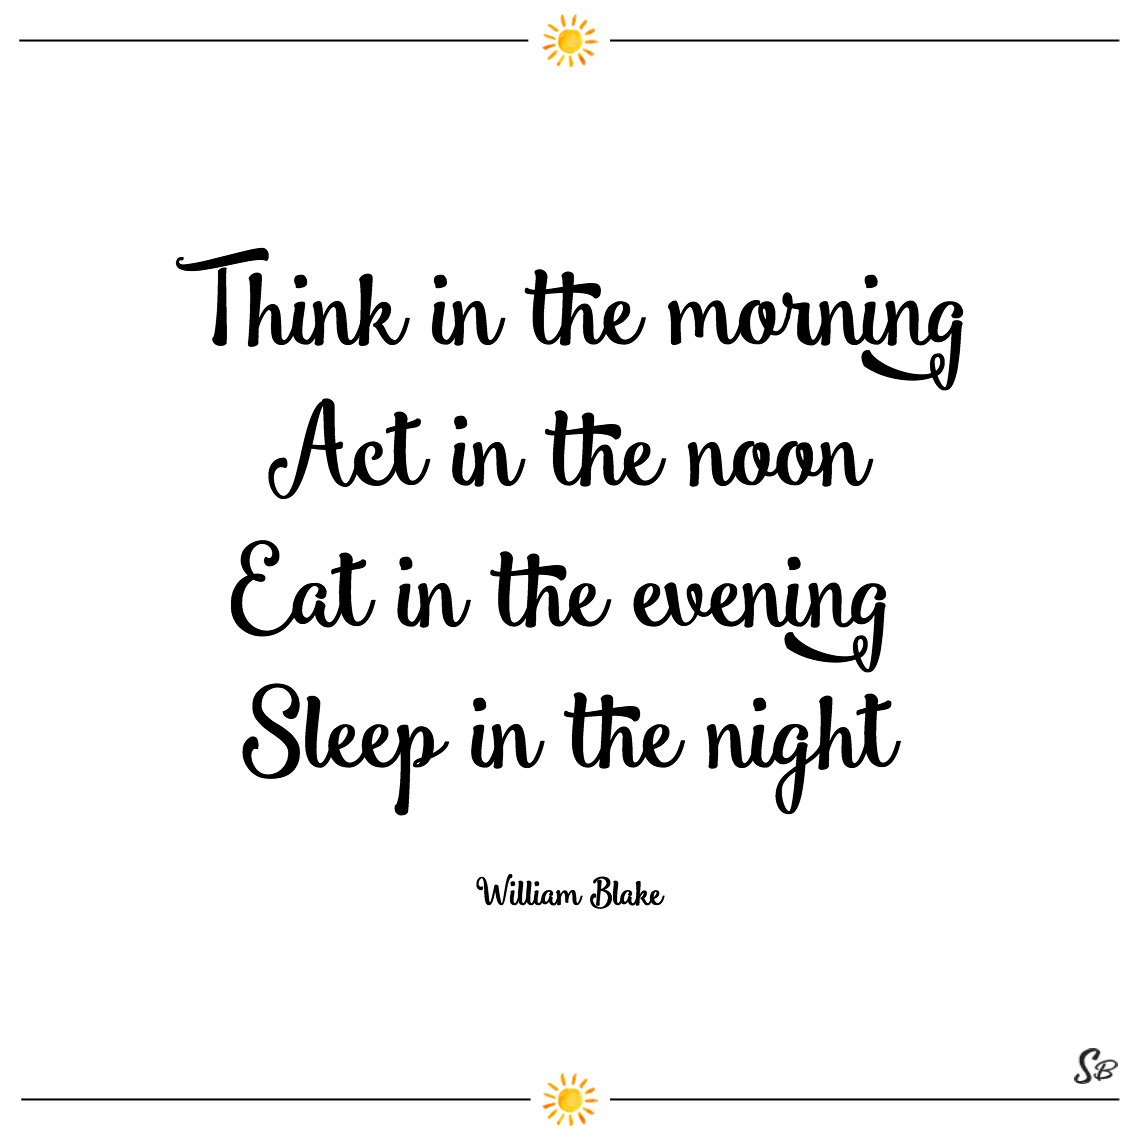 Think in the morning act in the noon eat in the evening sleep in the night william blake